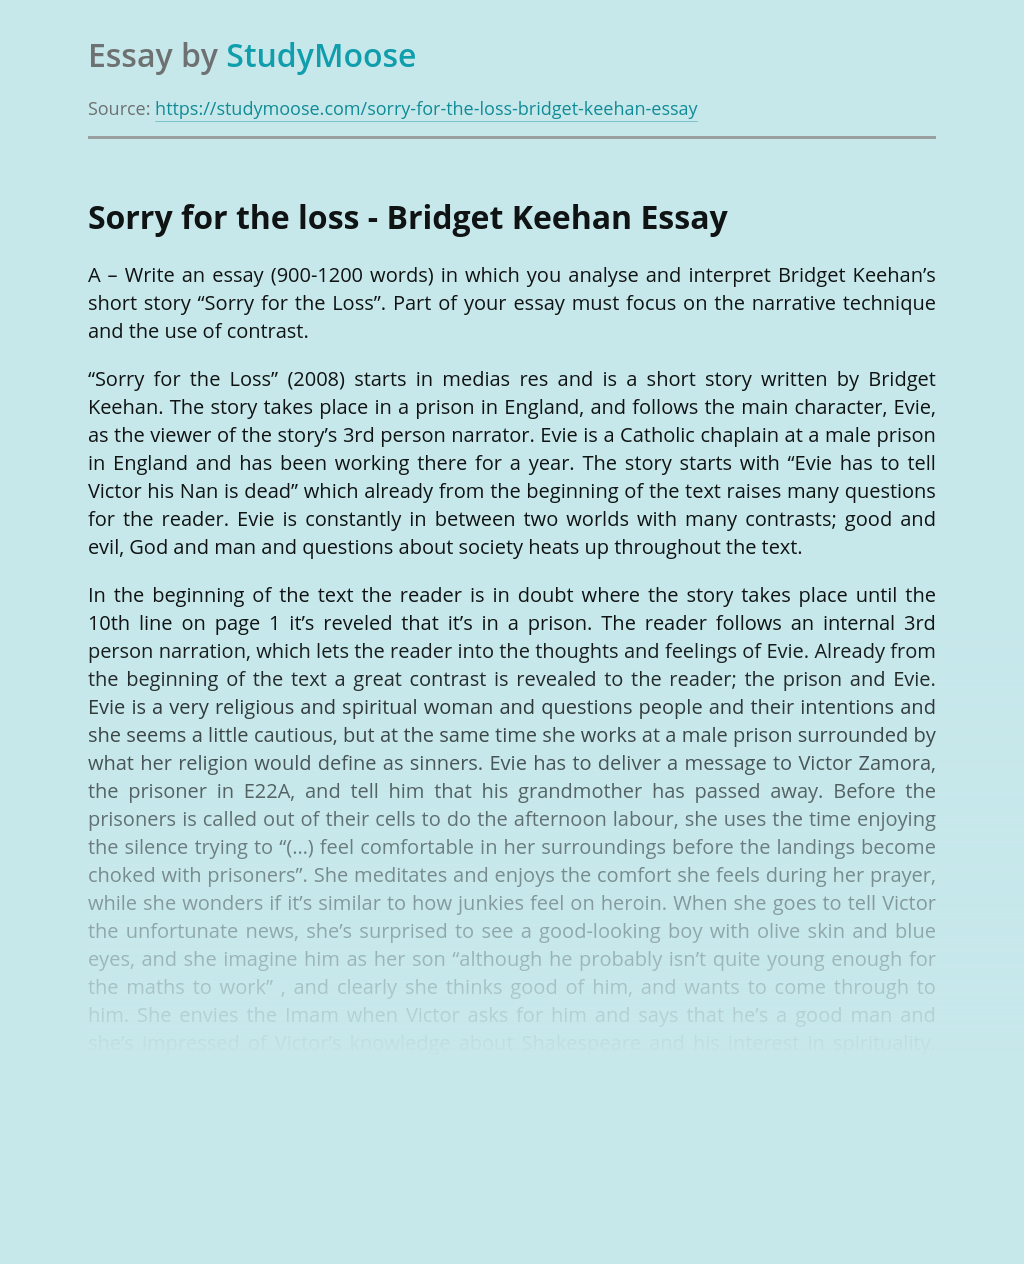 Sorry for the loss - Bridget Keehan